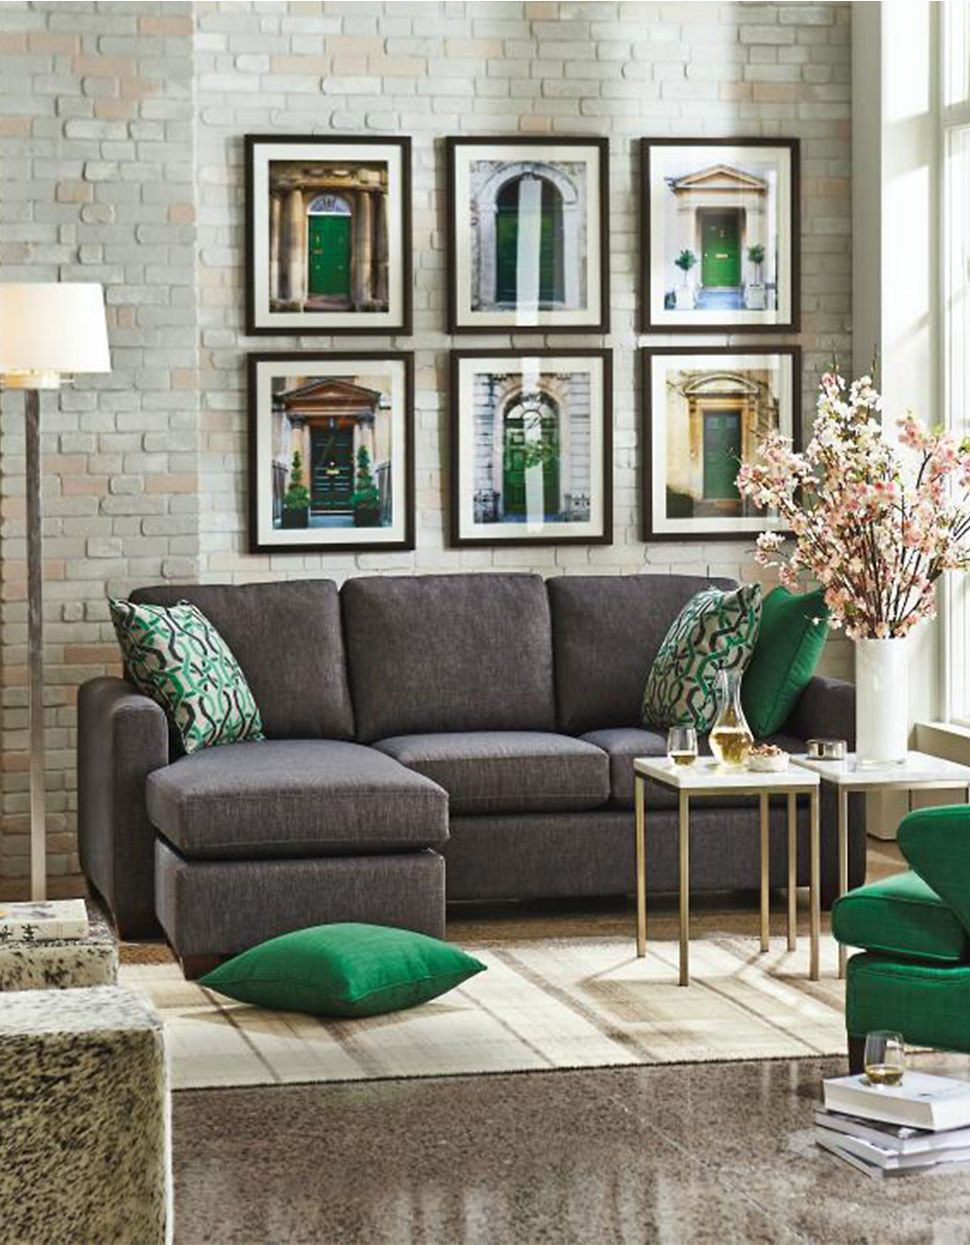 Living Room Ideas · Black/charcoal, Green And Gold / Andrea Sectional Sofa  With Chaise At Hudsonu0027s Bay Part 49